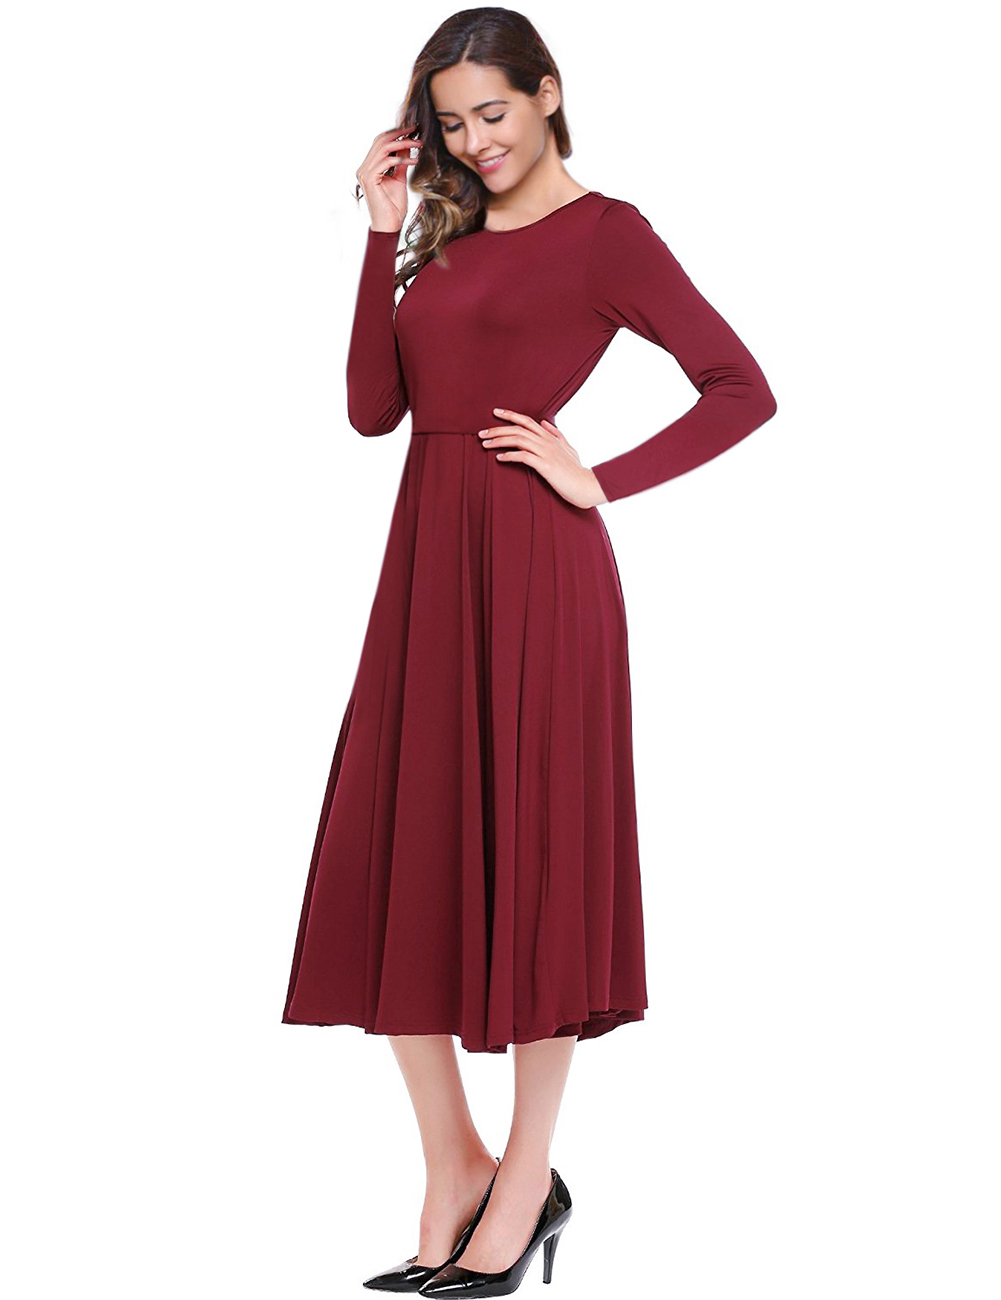 Leadingstar Women's Long Sleeve Midi Dress